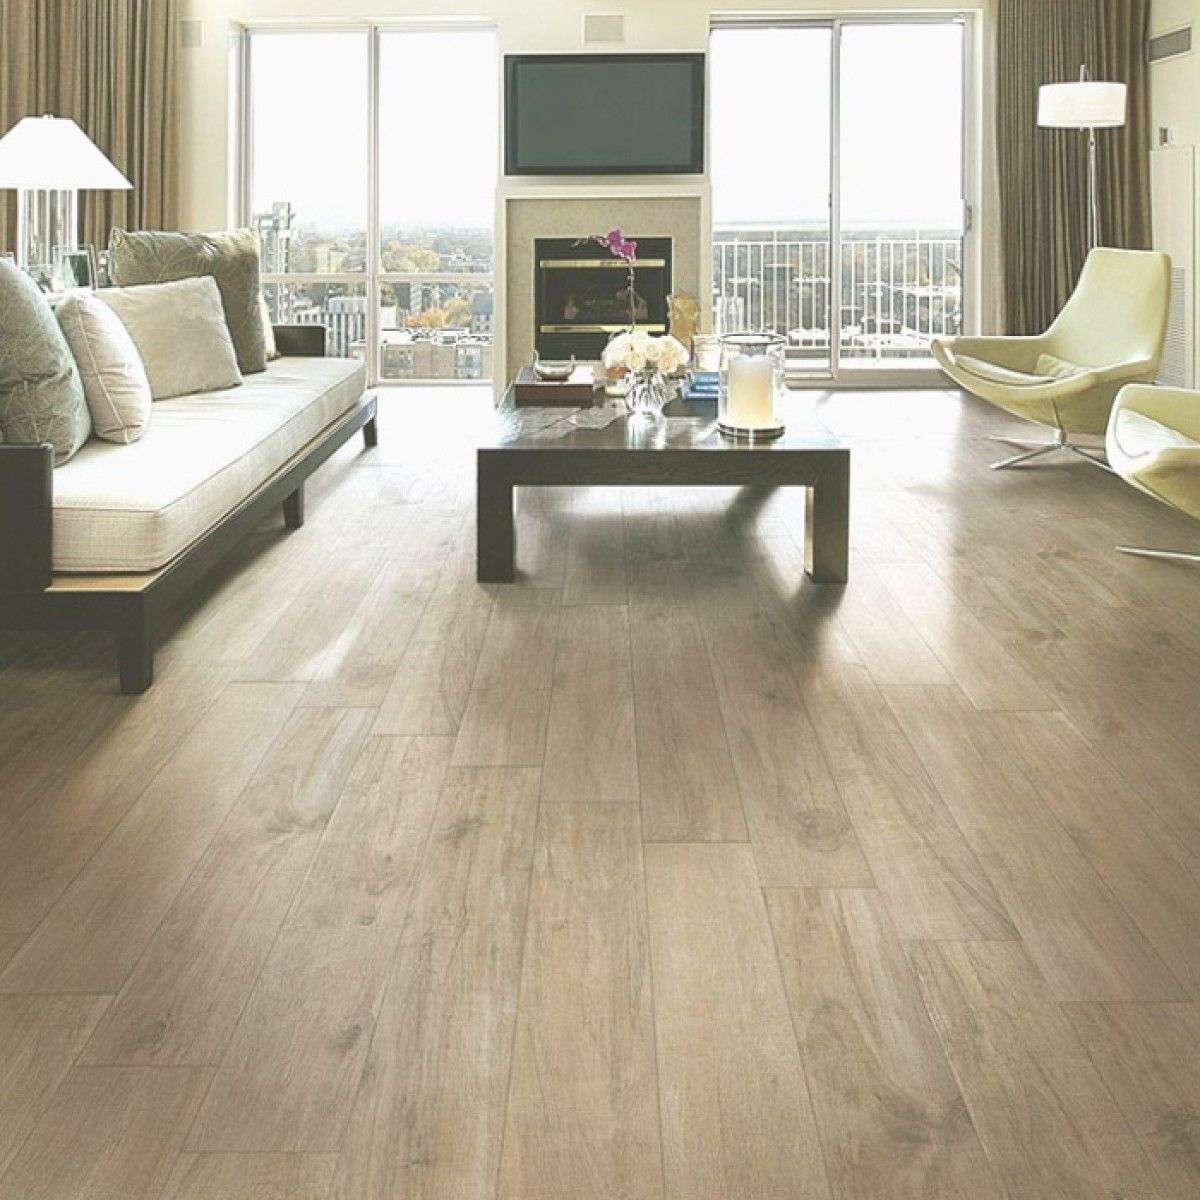 Crown tiles urban wood ecru floor tile crown tiles wood large range of wood effect floor tiles ceramic and porcelain in various colours from crown tiles with next day delivery discounts on urban wood ecru doublecrazyfo Choice Image